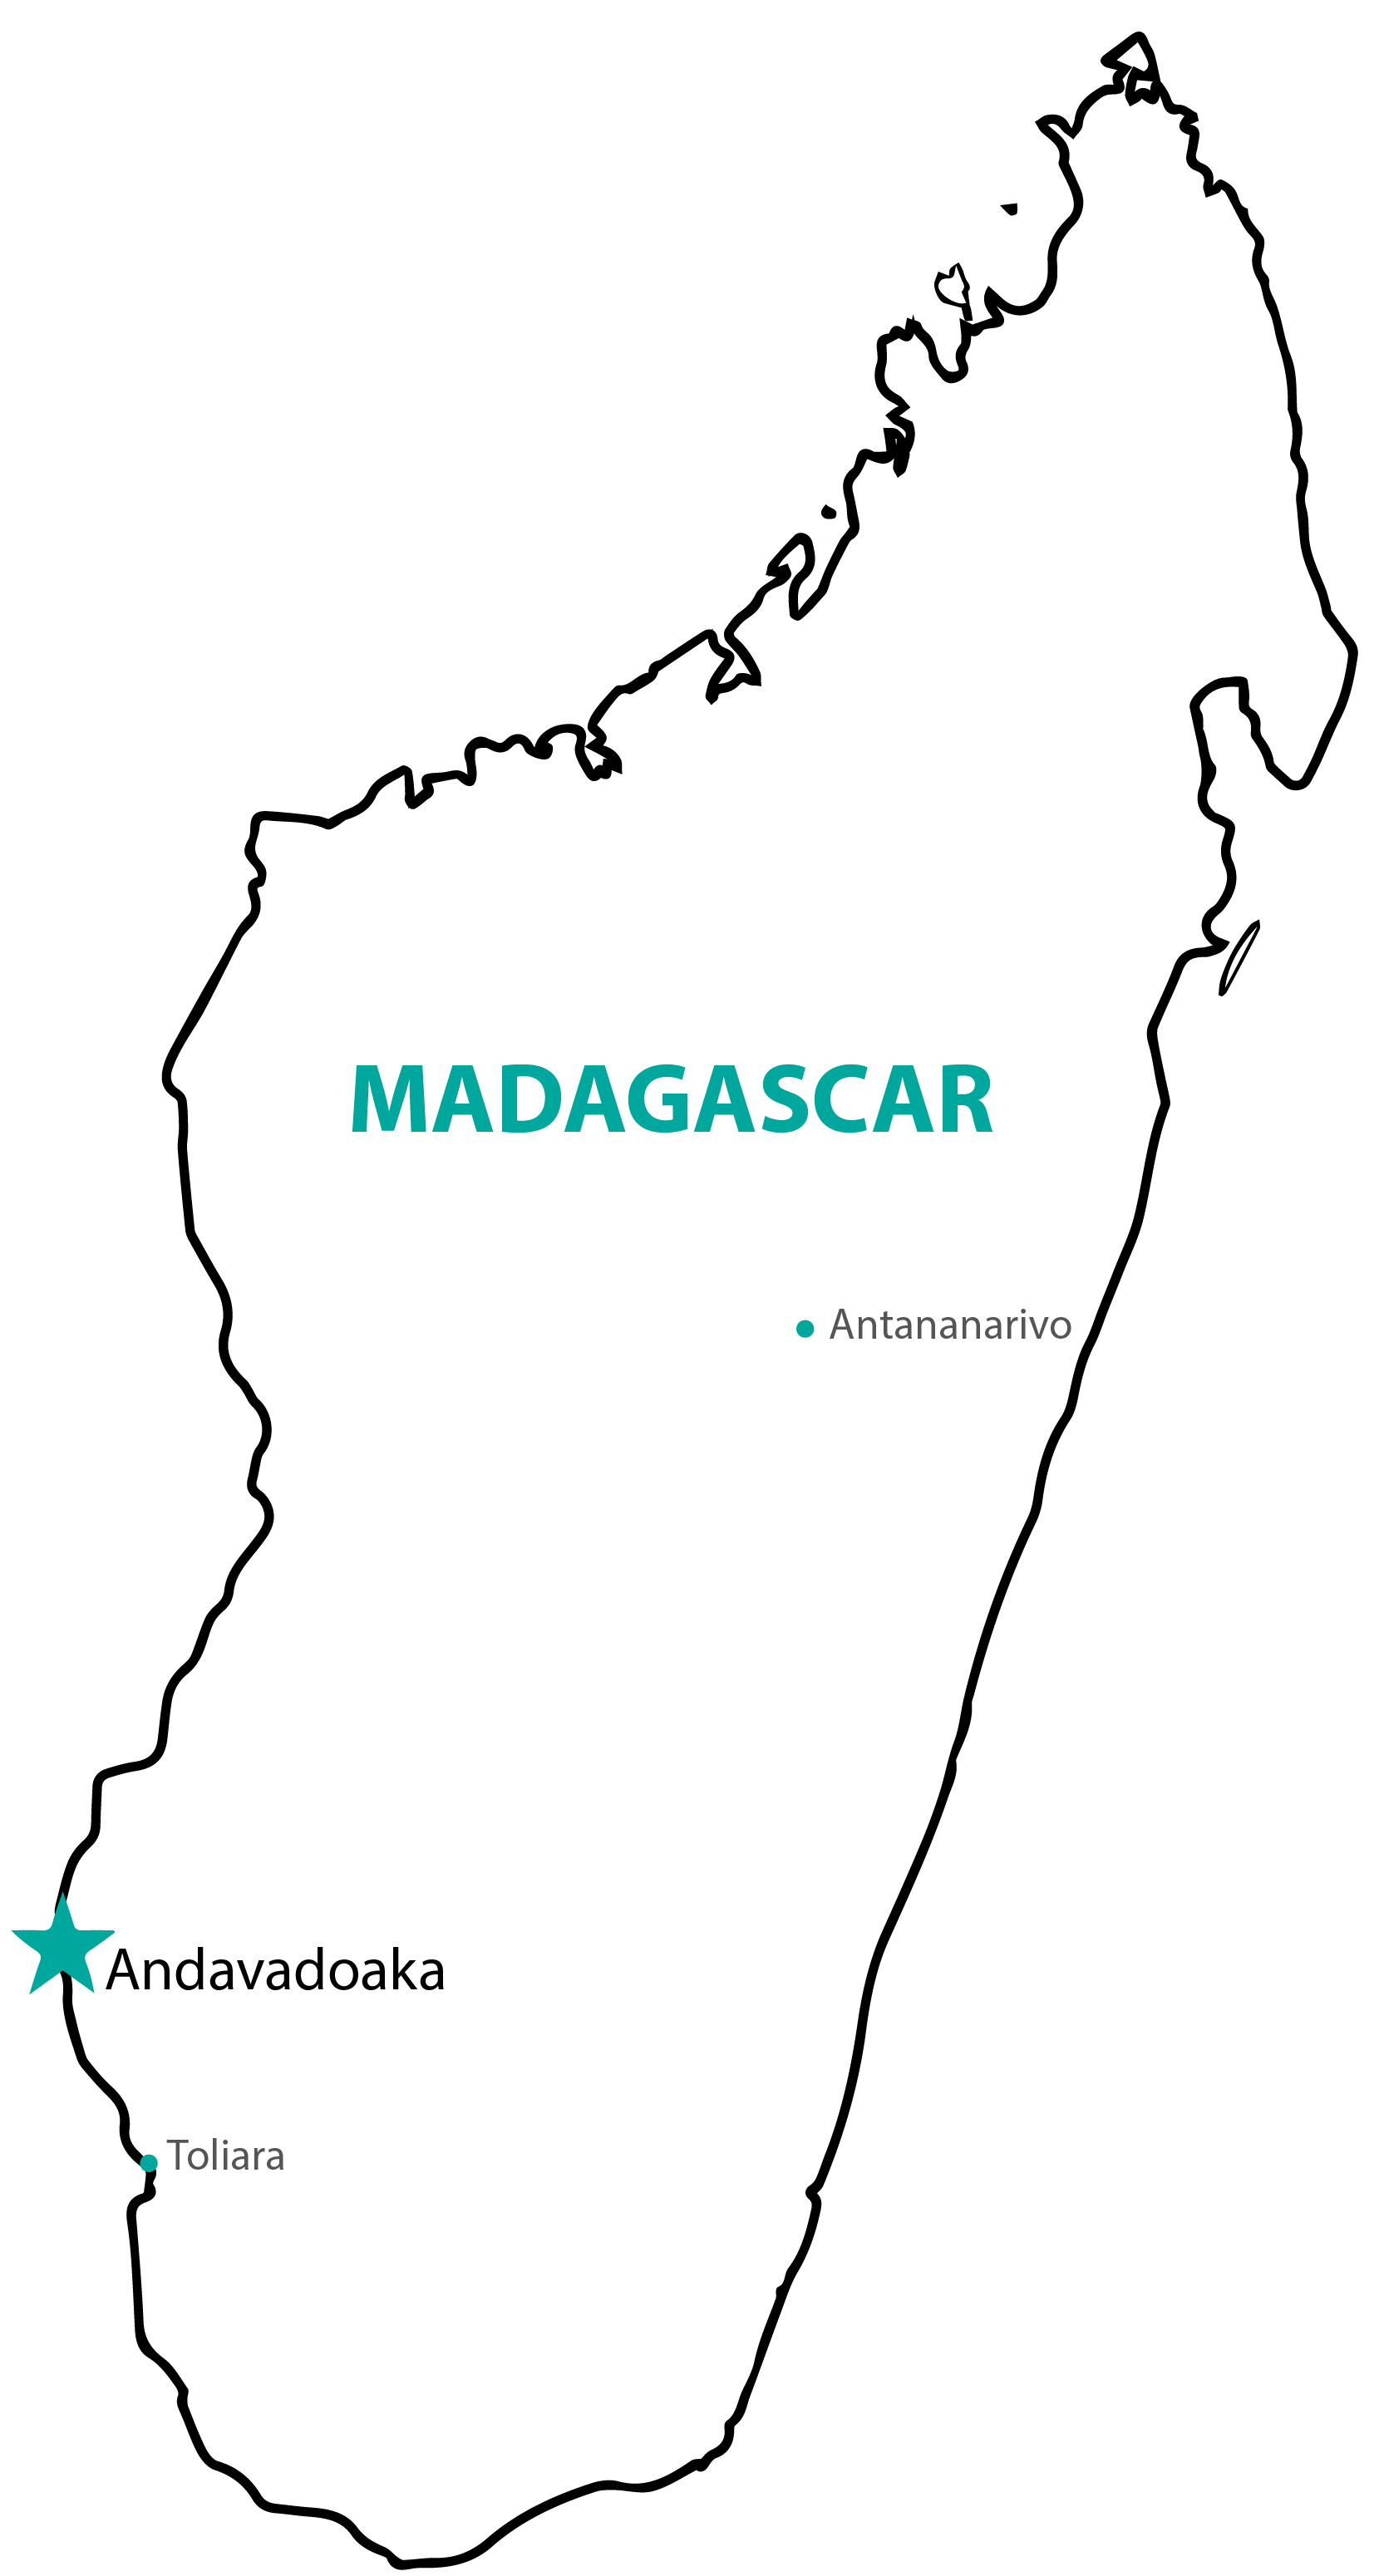 Madagascar country png. Squiddled thoughts madagascarmap